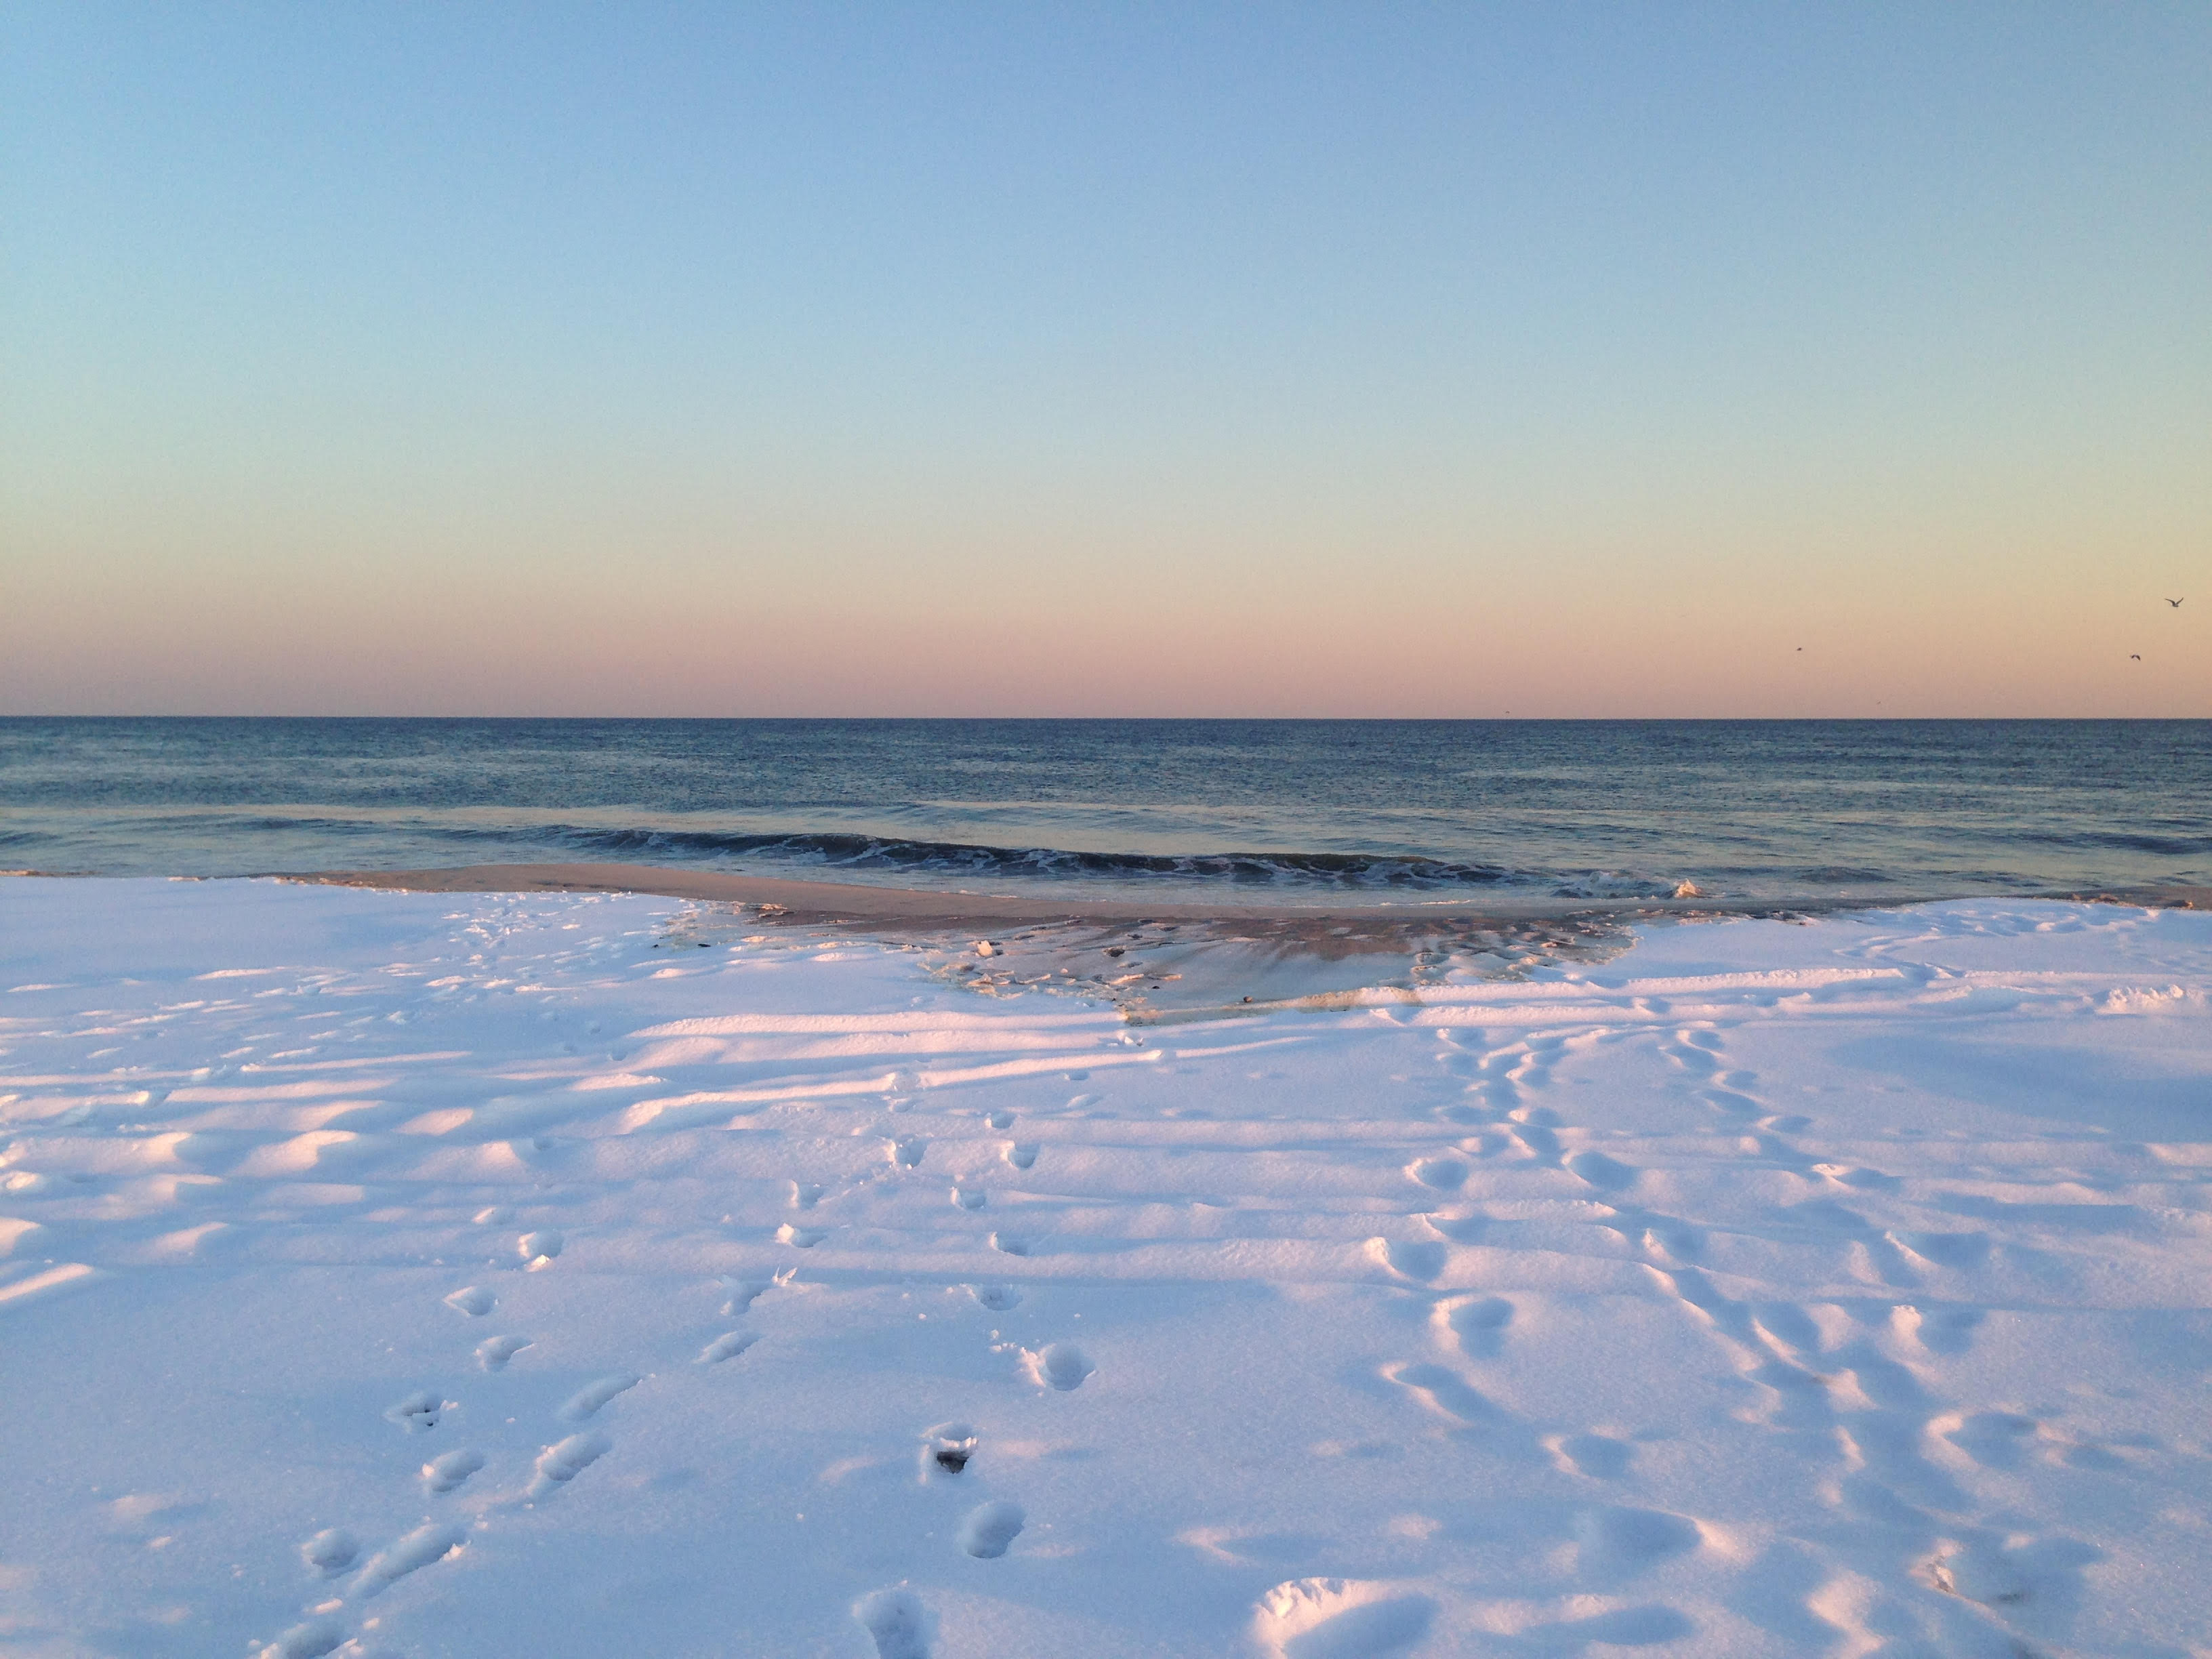 Snow covers the beach at Jones Beach State Park in Wantagh, NY. (Meaghan Lee Callaghan)